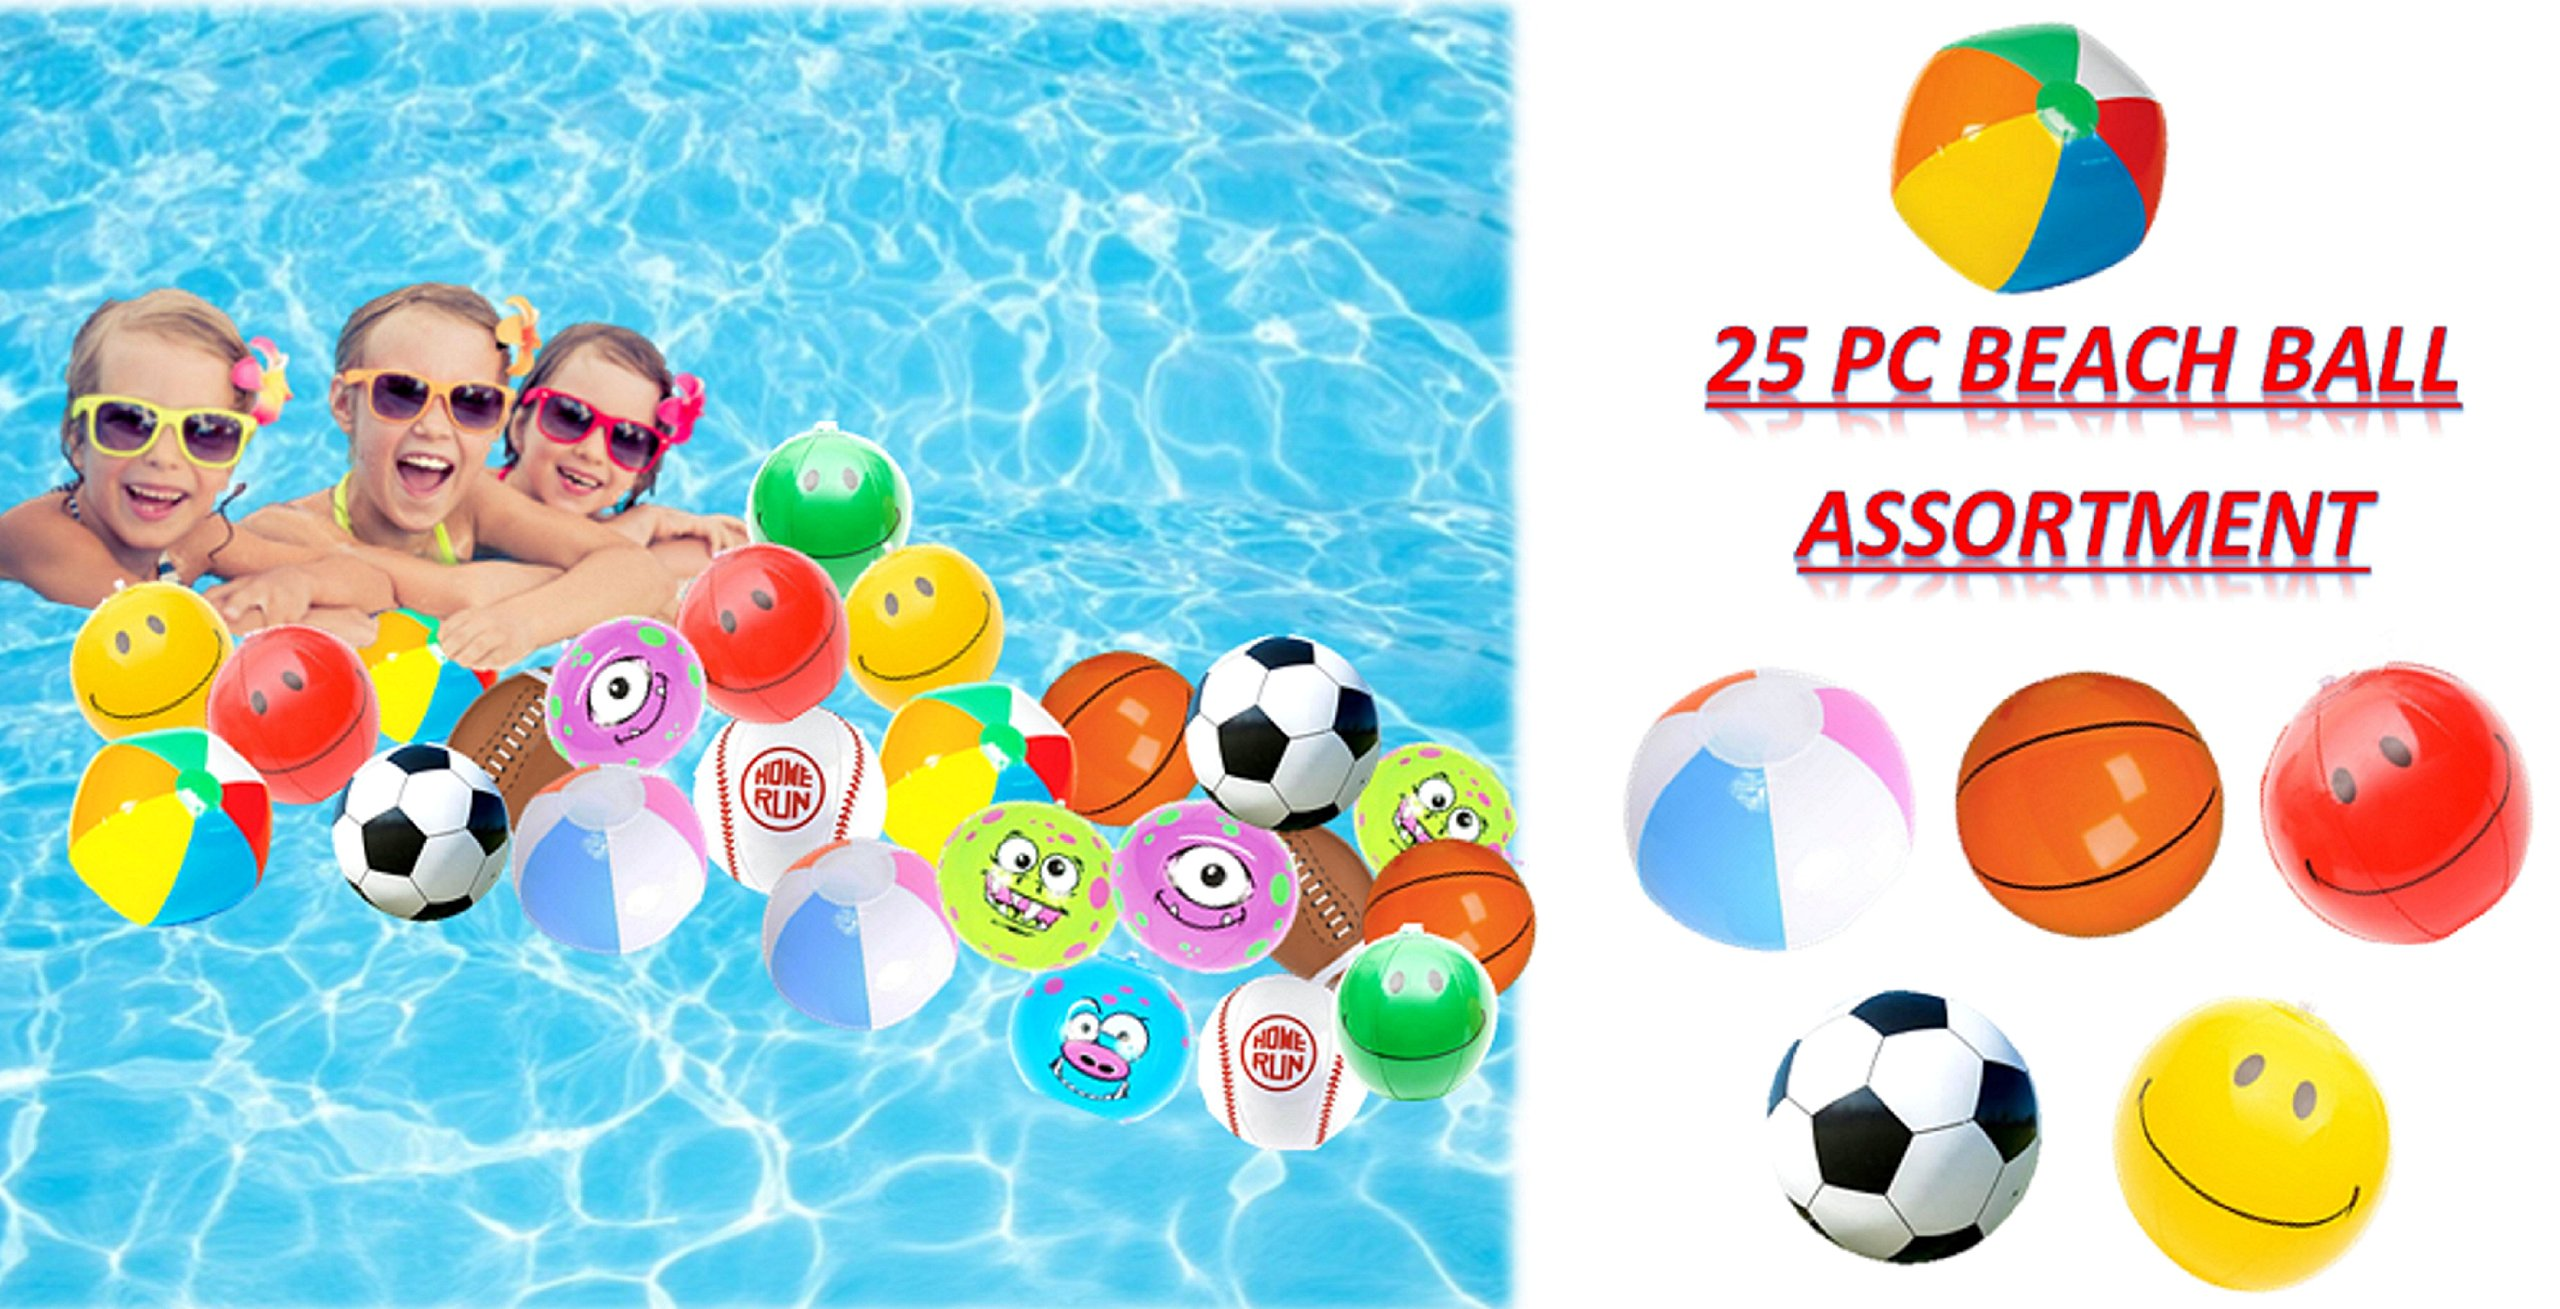 Play Kreative Assorted Mini Beach Balls - 25 Pack - 6'' Inflatable Pool Toys Beachballs Party Favor by Play Kreative